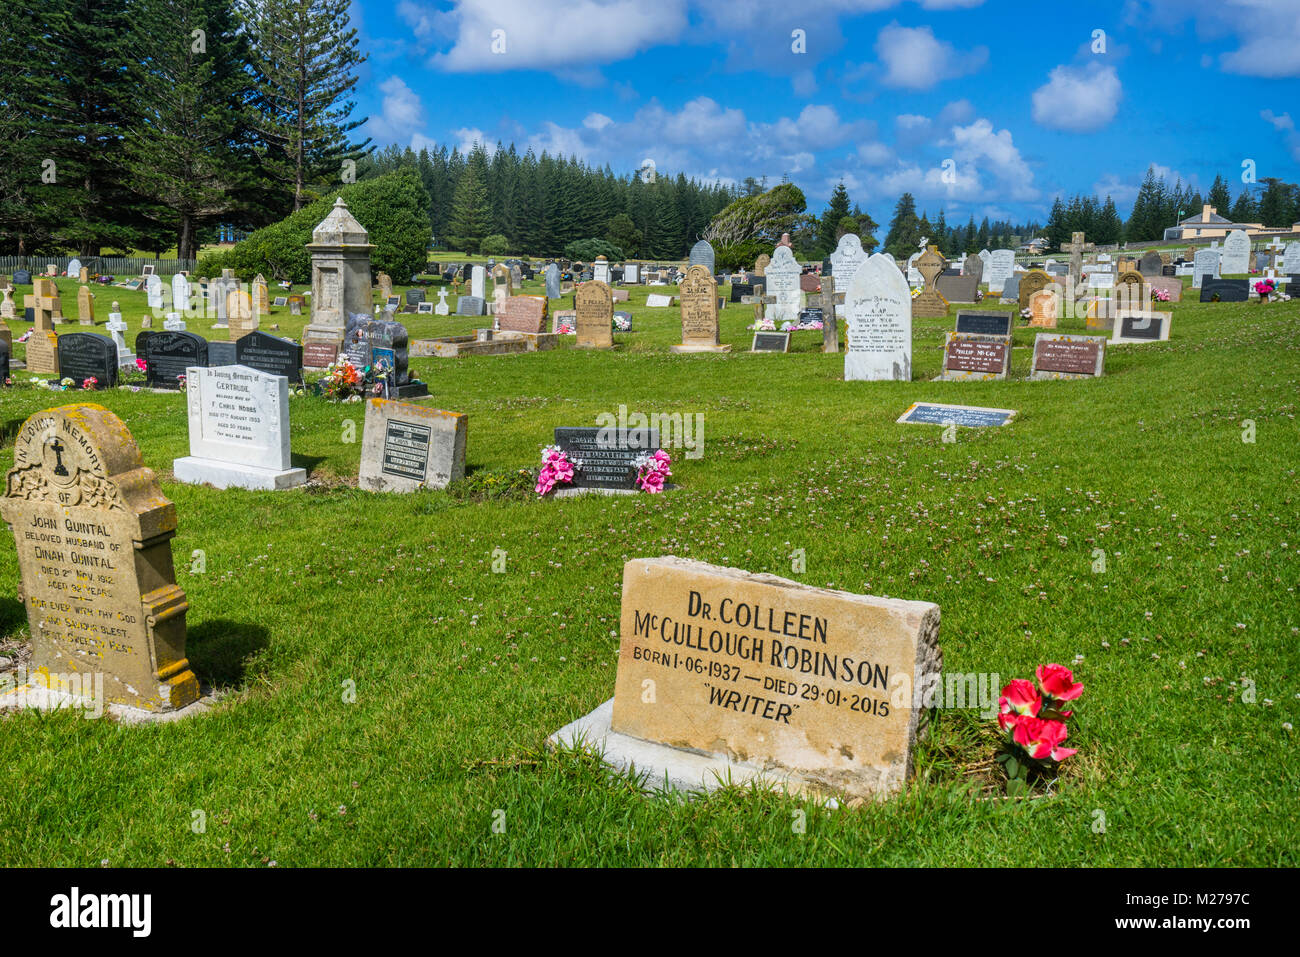 Norfolk Island, Australian external territory, grave of writer Colleen McCullough Robinson at Norfolk Island cemetery - Stock Image